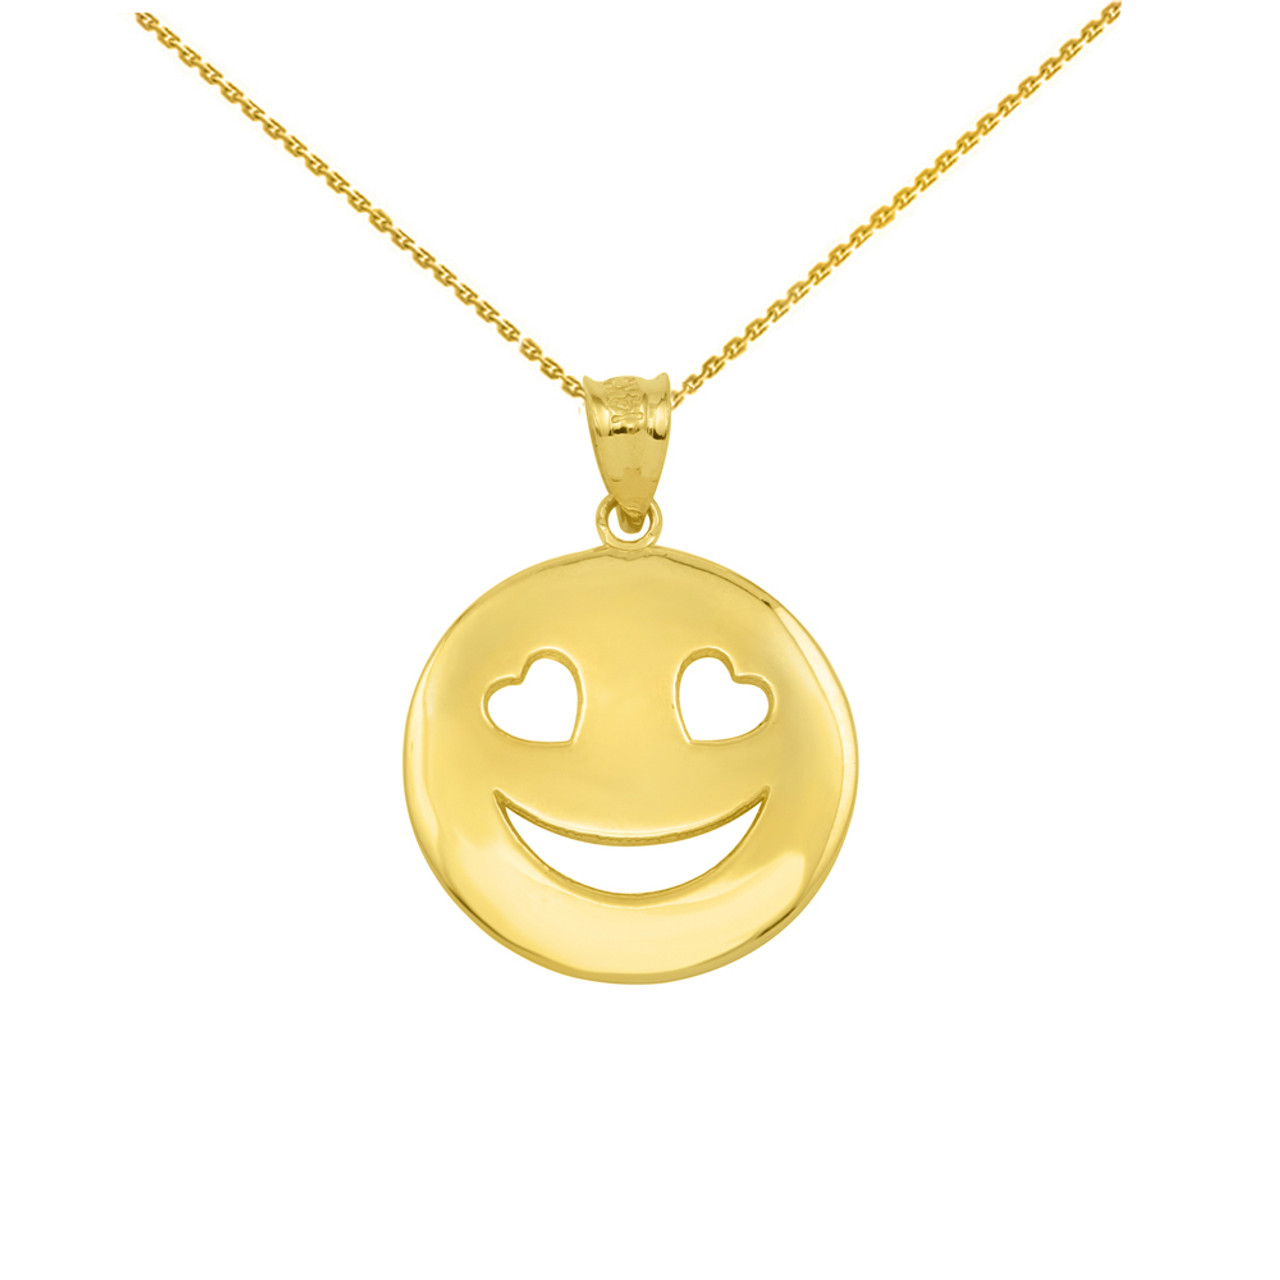 Yellow gold heart eyes smiley face pendant necklace aloadofball